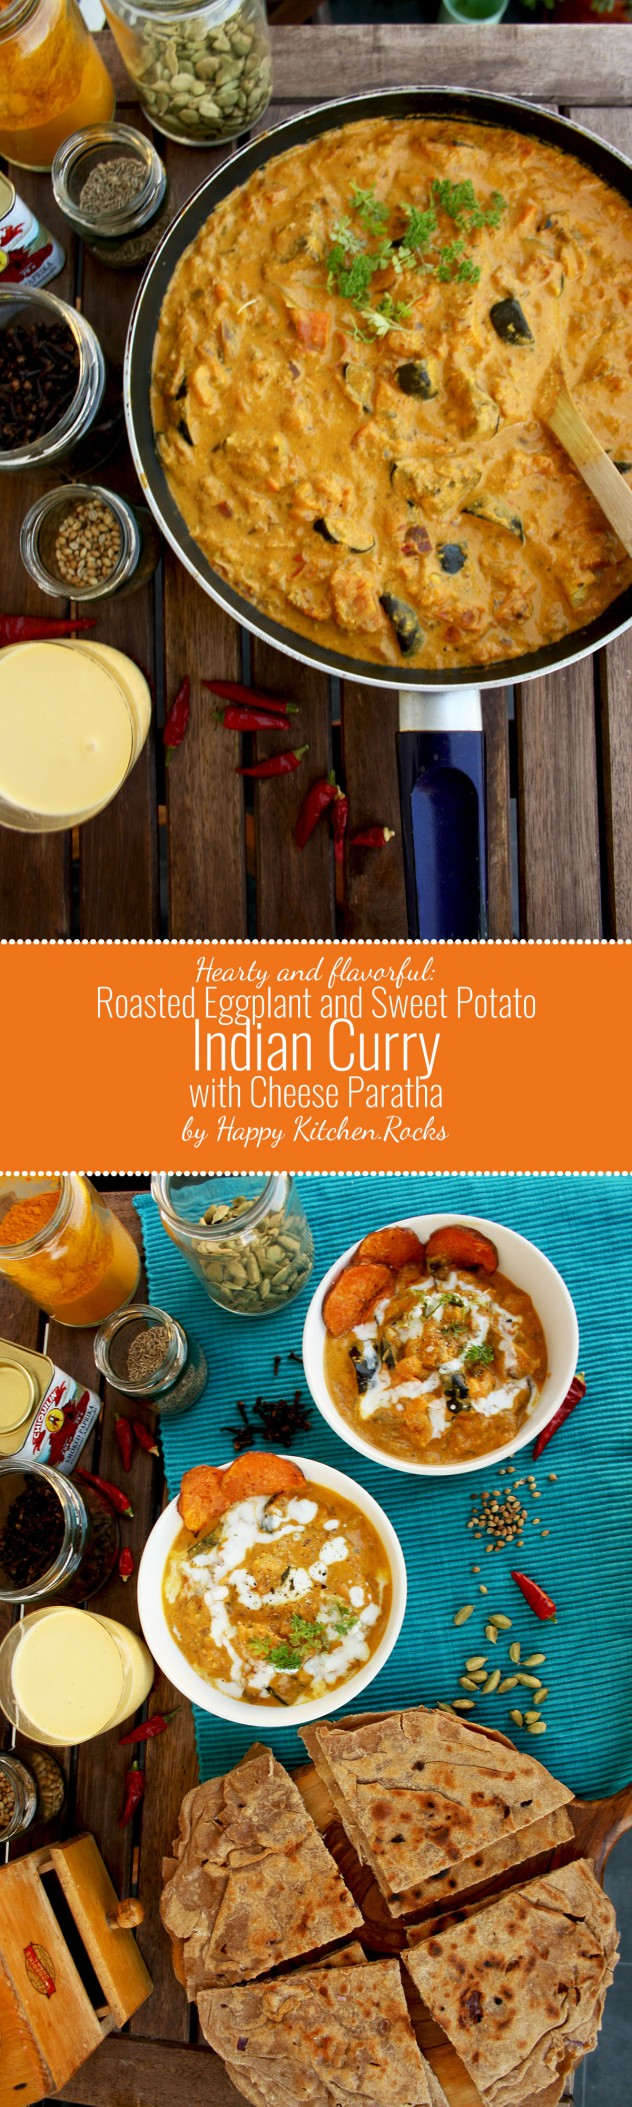 Pinterest Image Eggplant Curry with Sweet Potatoes